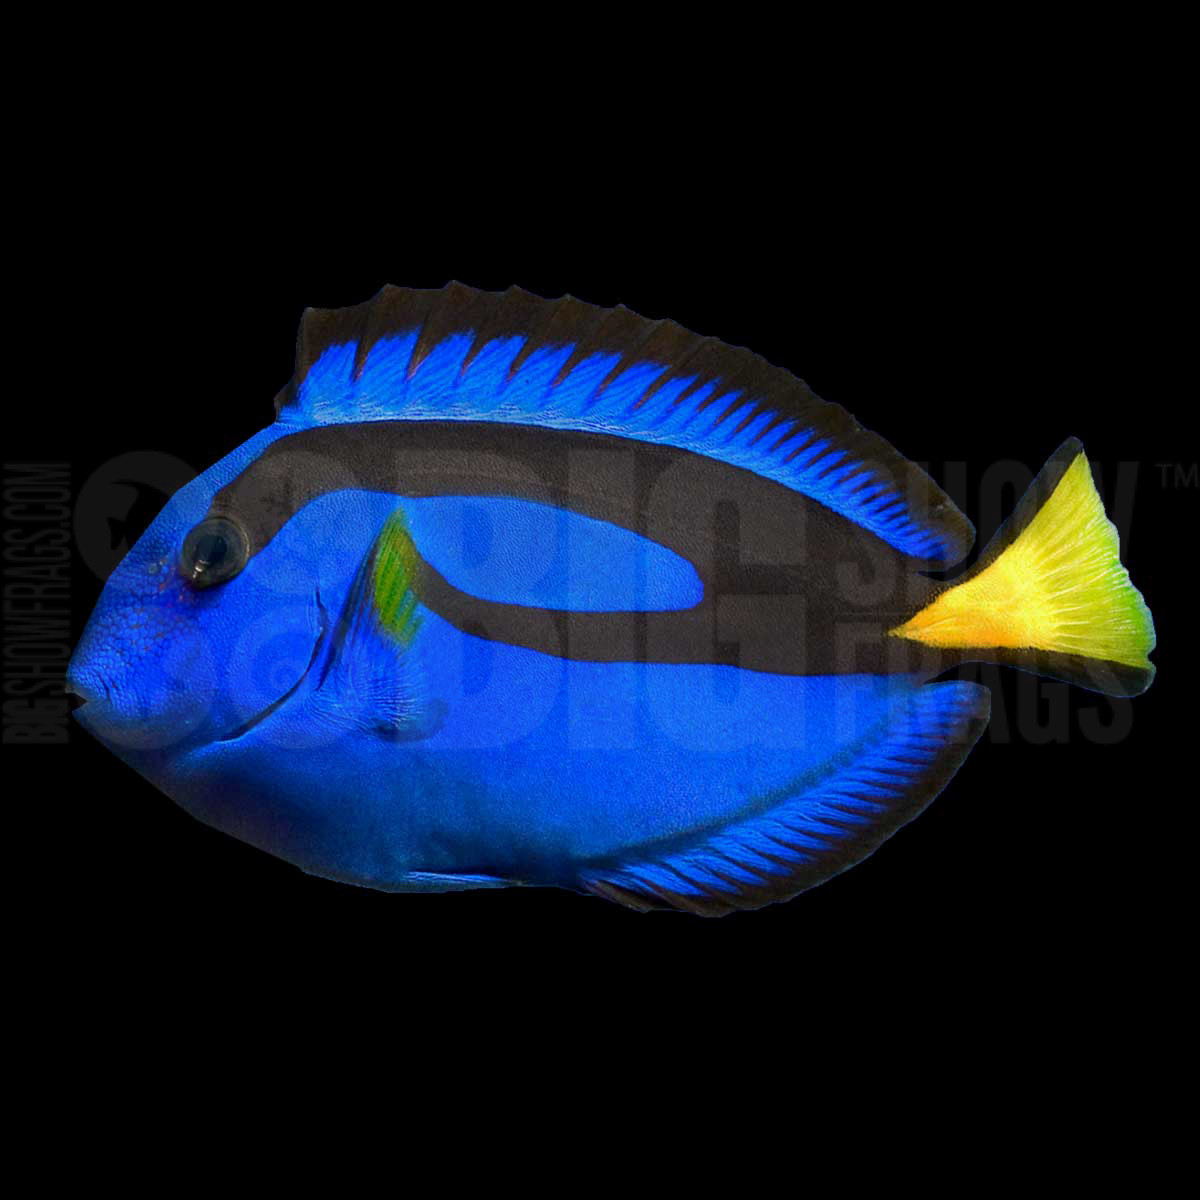 Blue hippo tang tank raised bigshow frags for Blue tang fish price